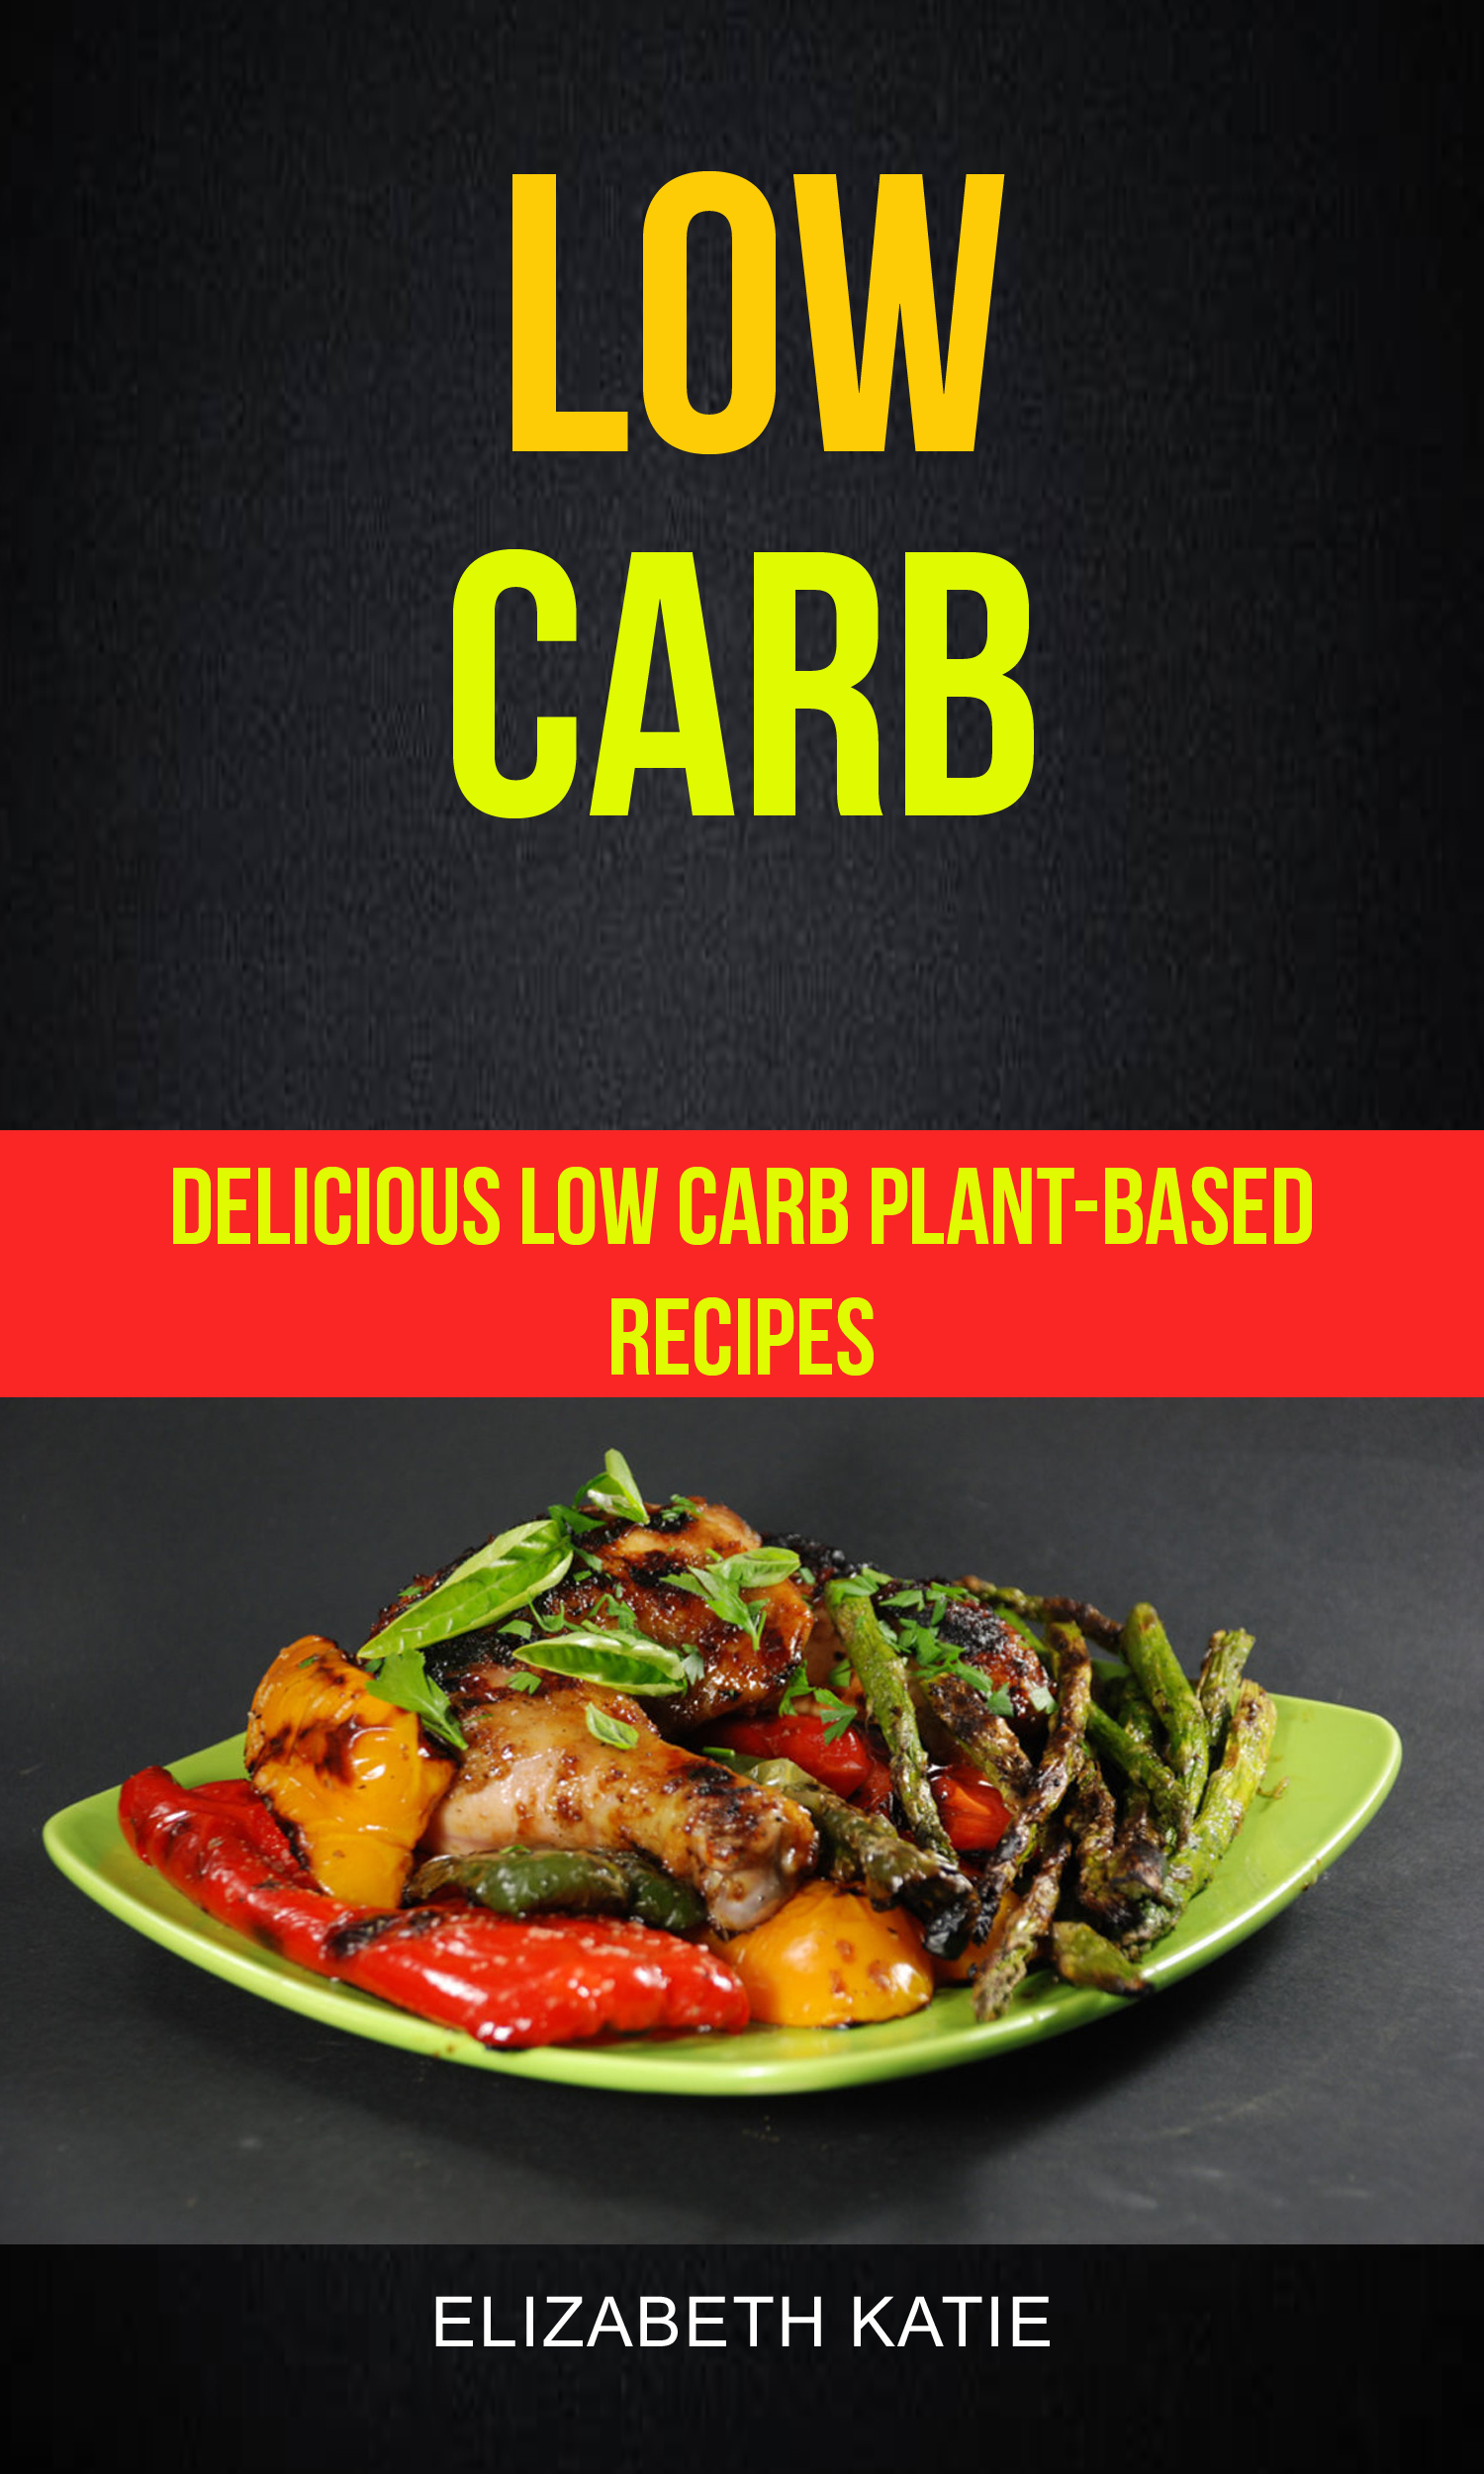 Low carb: delicious low carb plant-based recipes